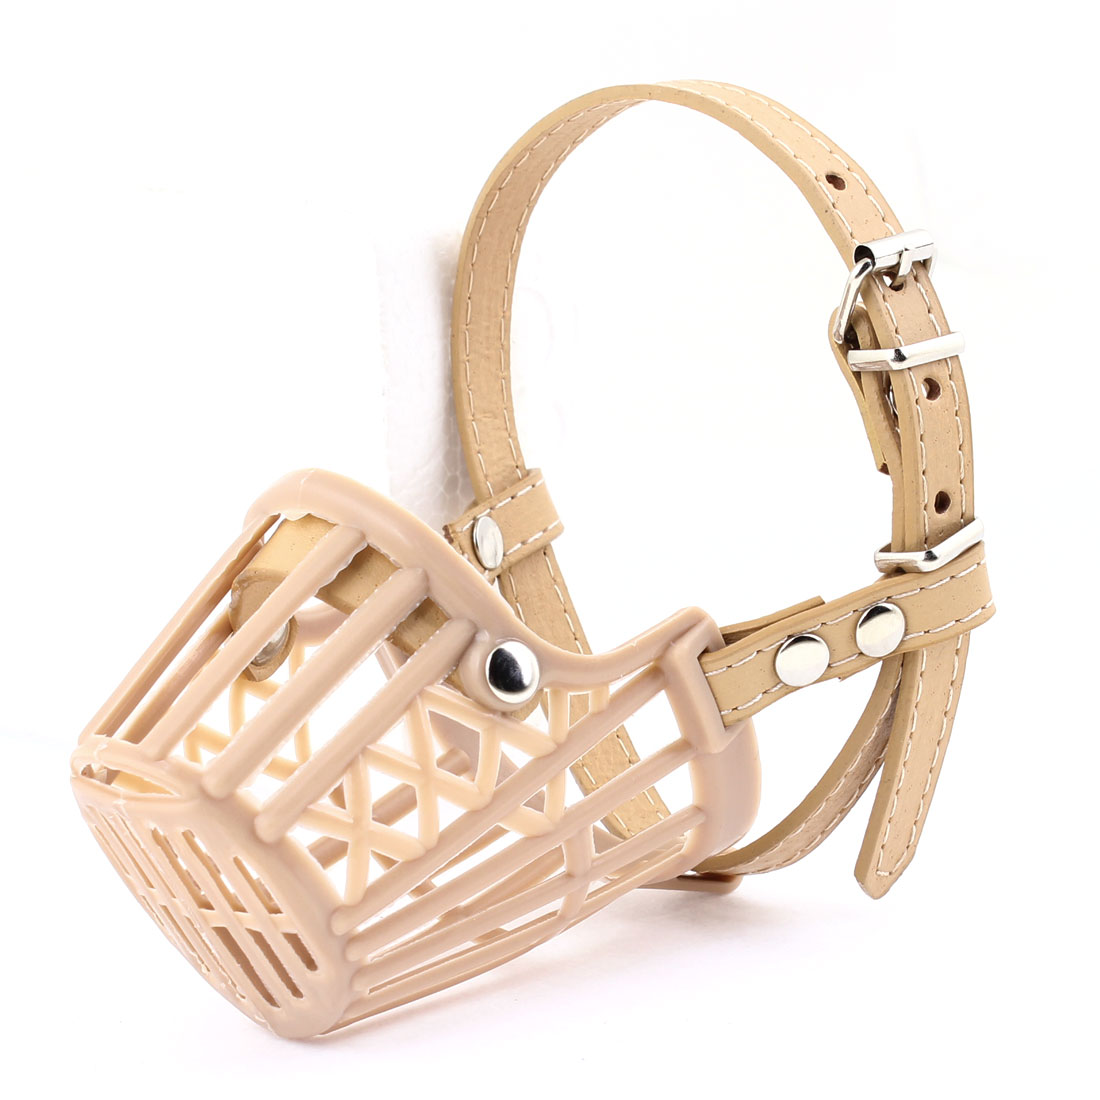 Single Pin Buckle Beige Plastic Adjustable Mesh Muzzle for Dog Doggie